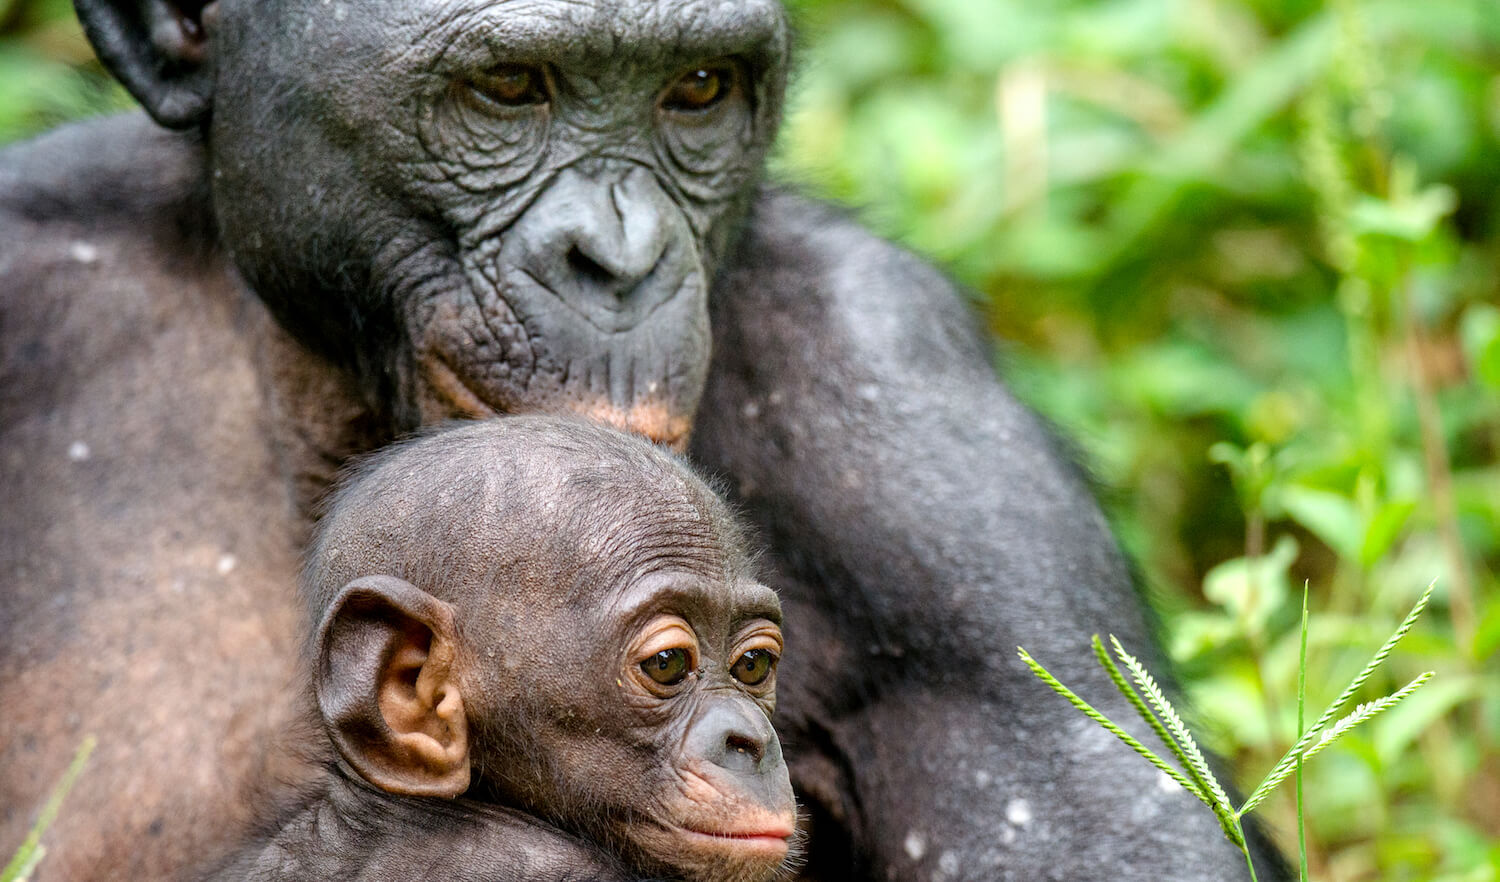 Shutterstock Bans Photos of Primates in Unnatural Settings